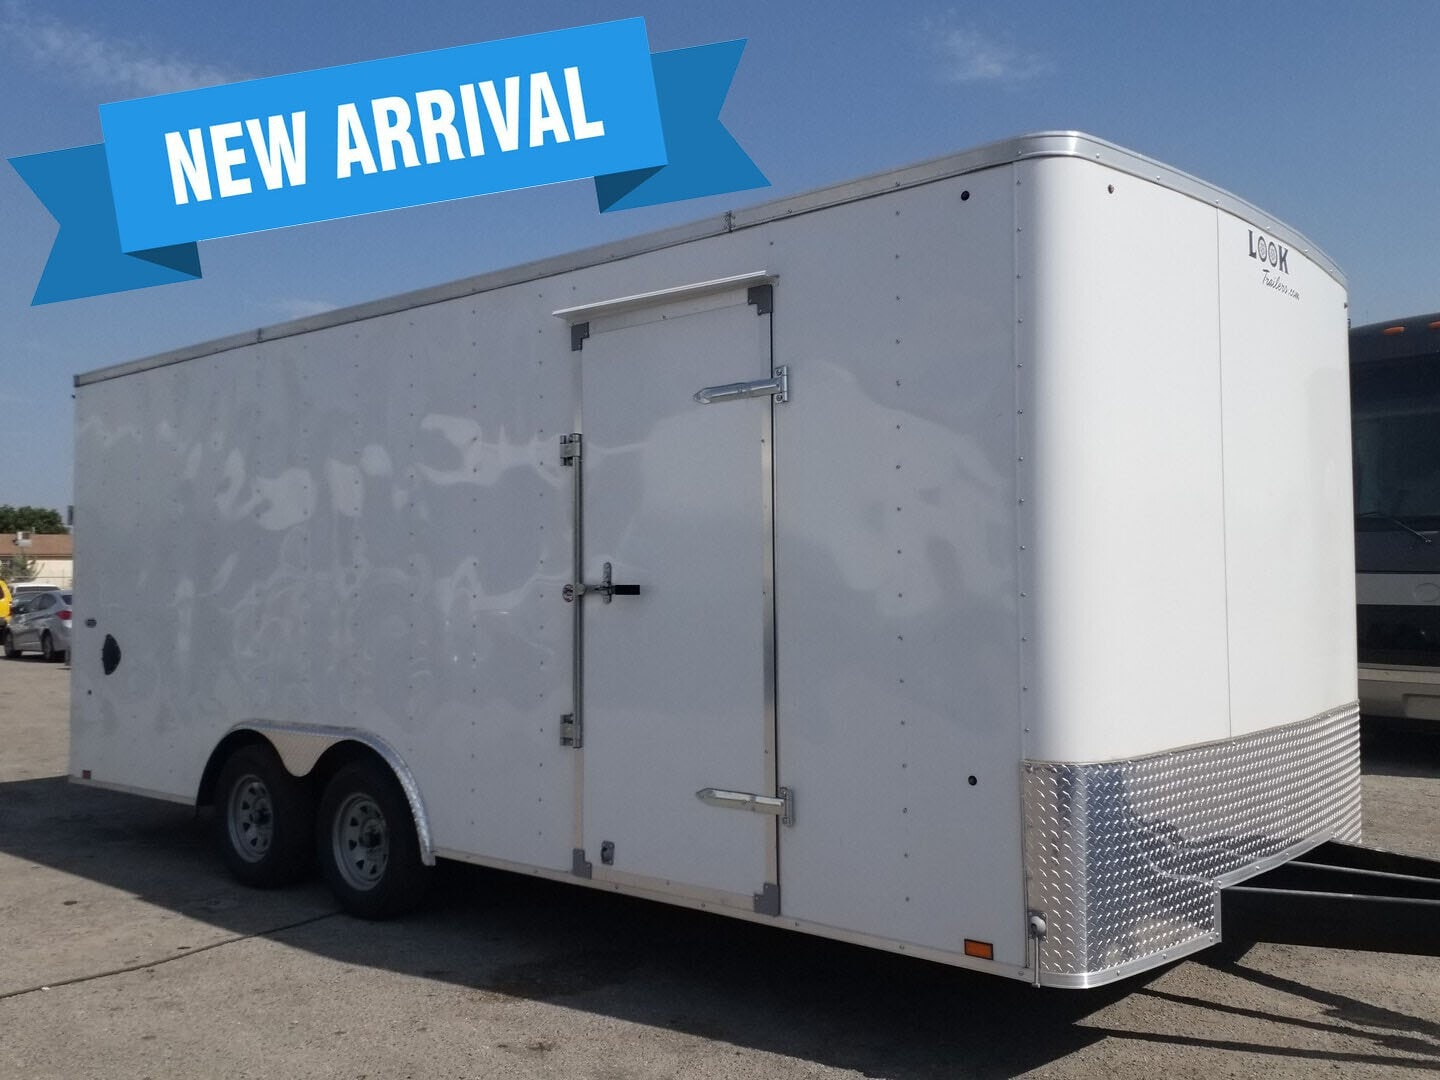 Used, 2021, Look Trailers, 8.5x20, Enclosed Trailers